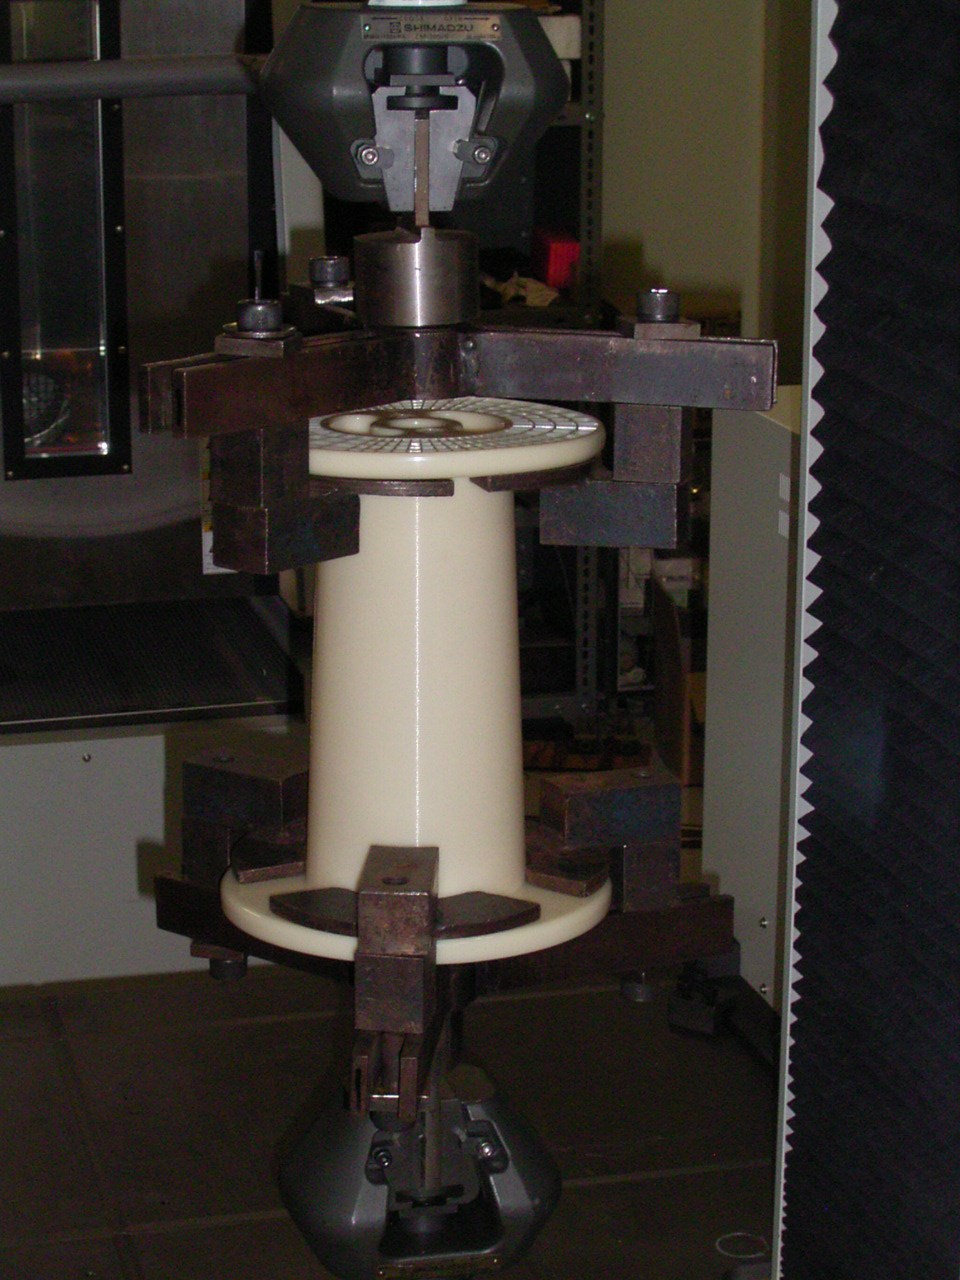 Durable bobbin winder with patented processing technology